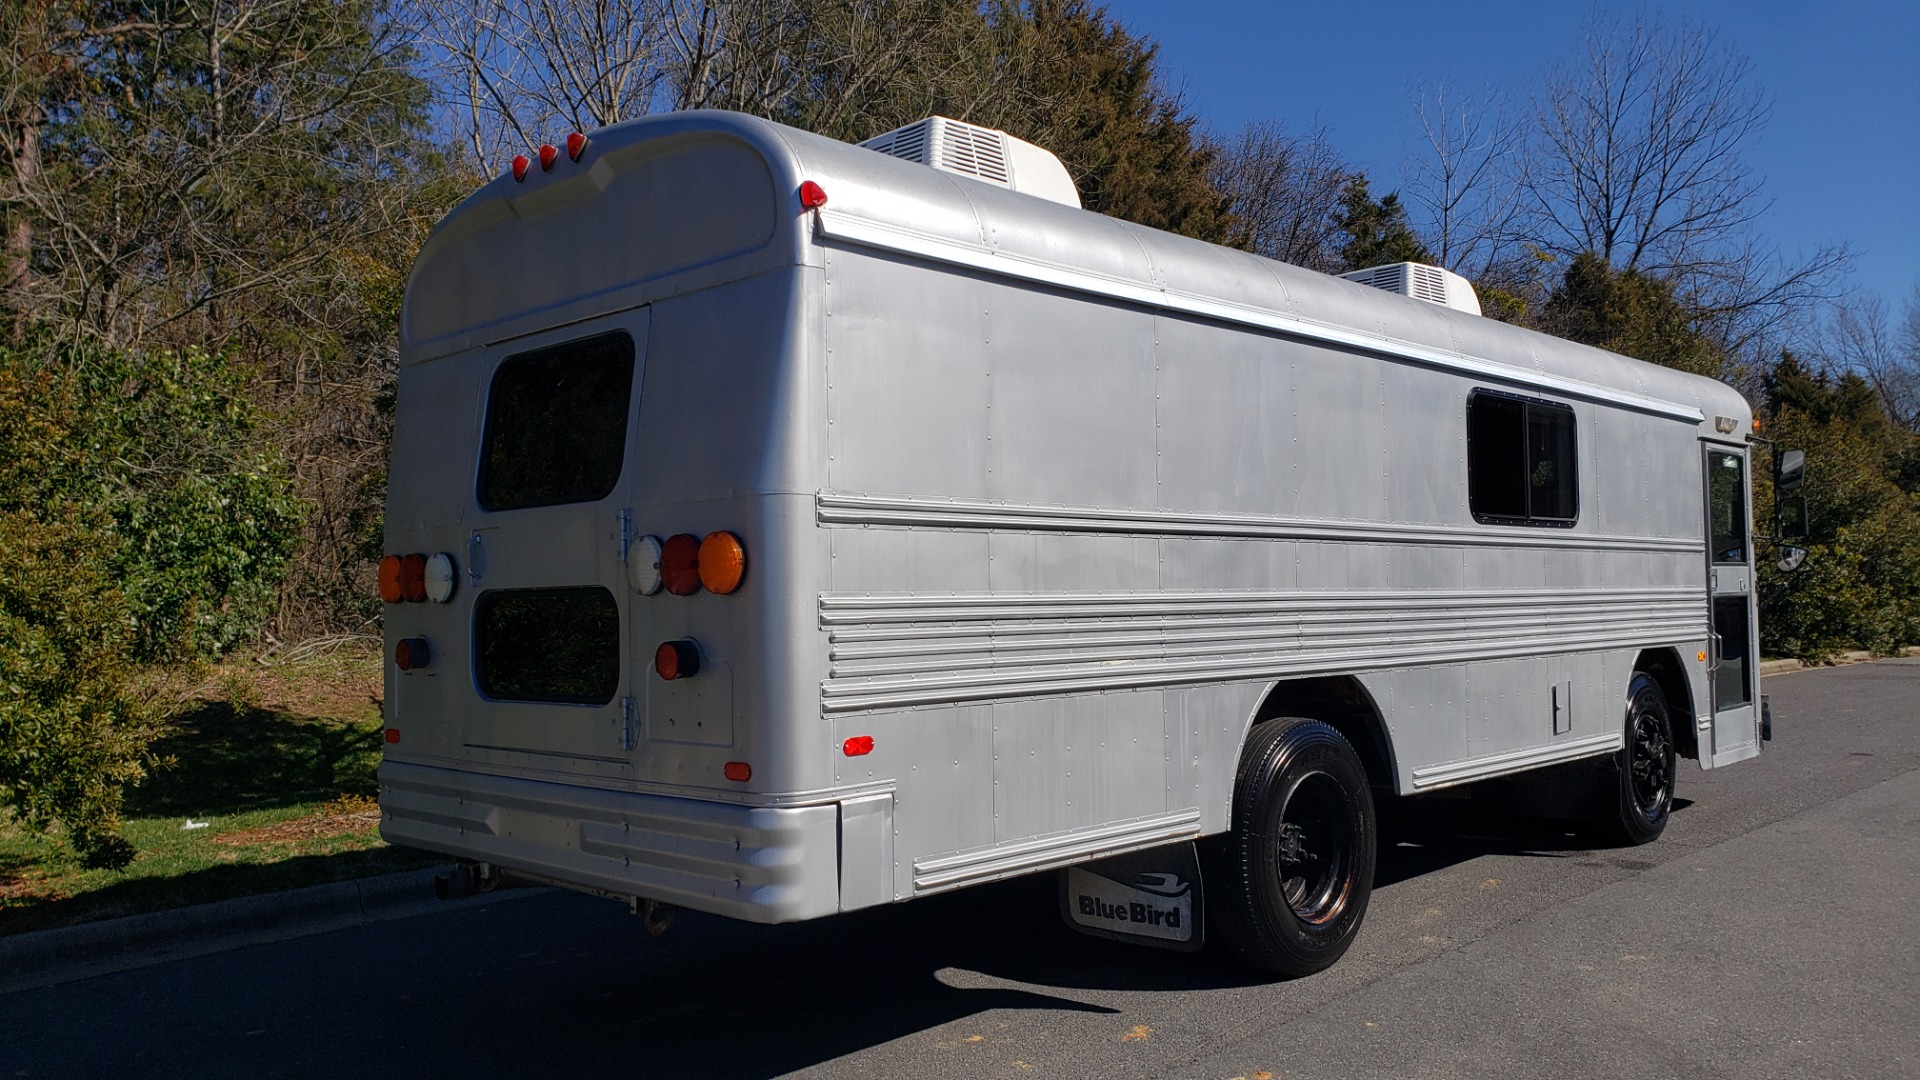 Used 1993 Chevrolet BLUEBIRD SCHOOL BUS 30' / CUMMINS DIESEL / AIR / GENERATOR for sale $35,000 at Formula Imports in Charlotte NC 28227 4